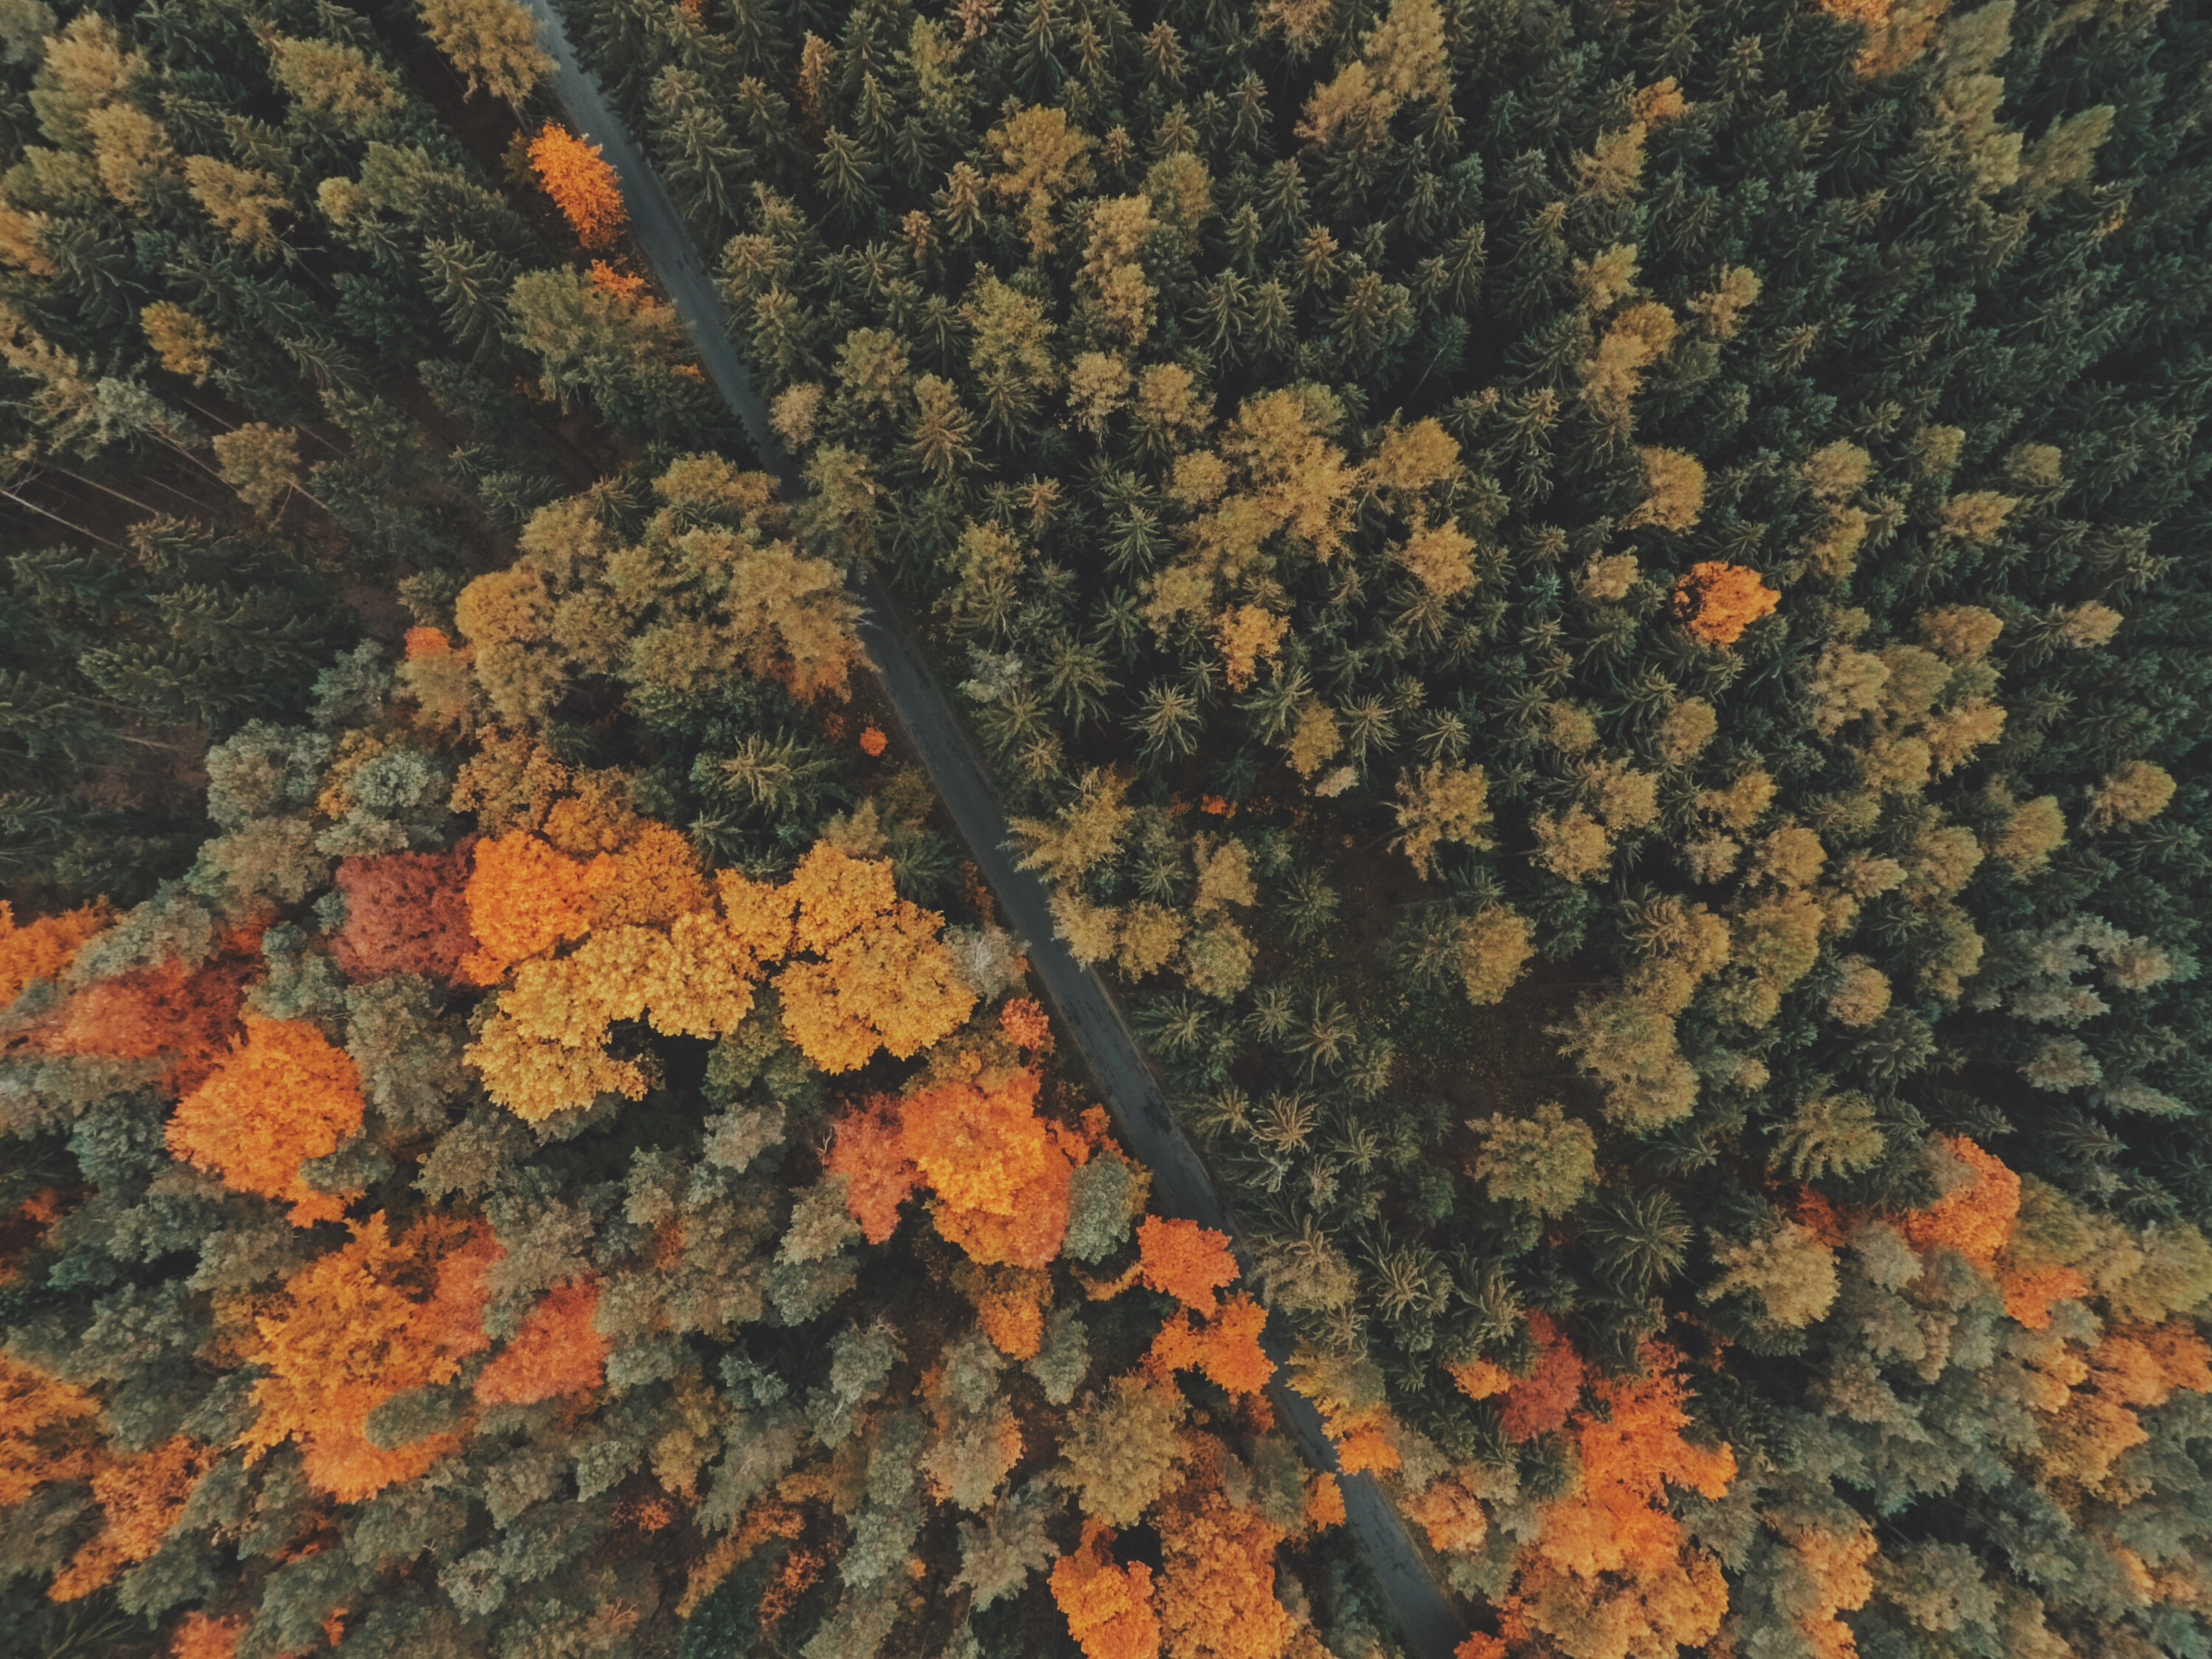 Aerial shot of autumn leaves